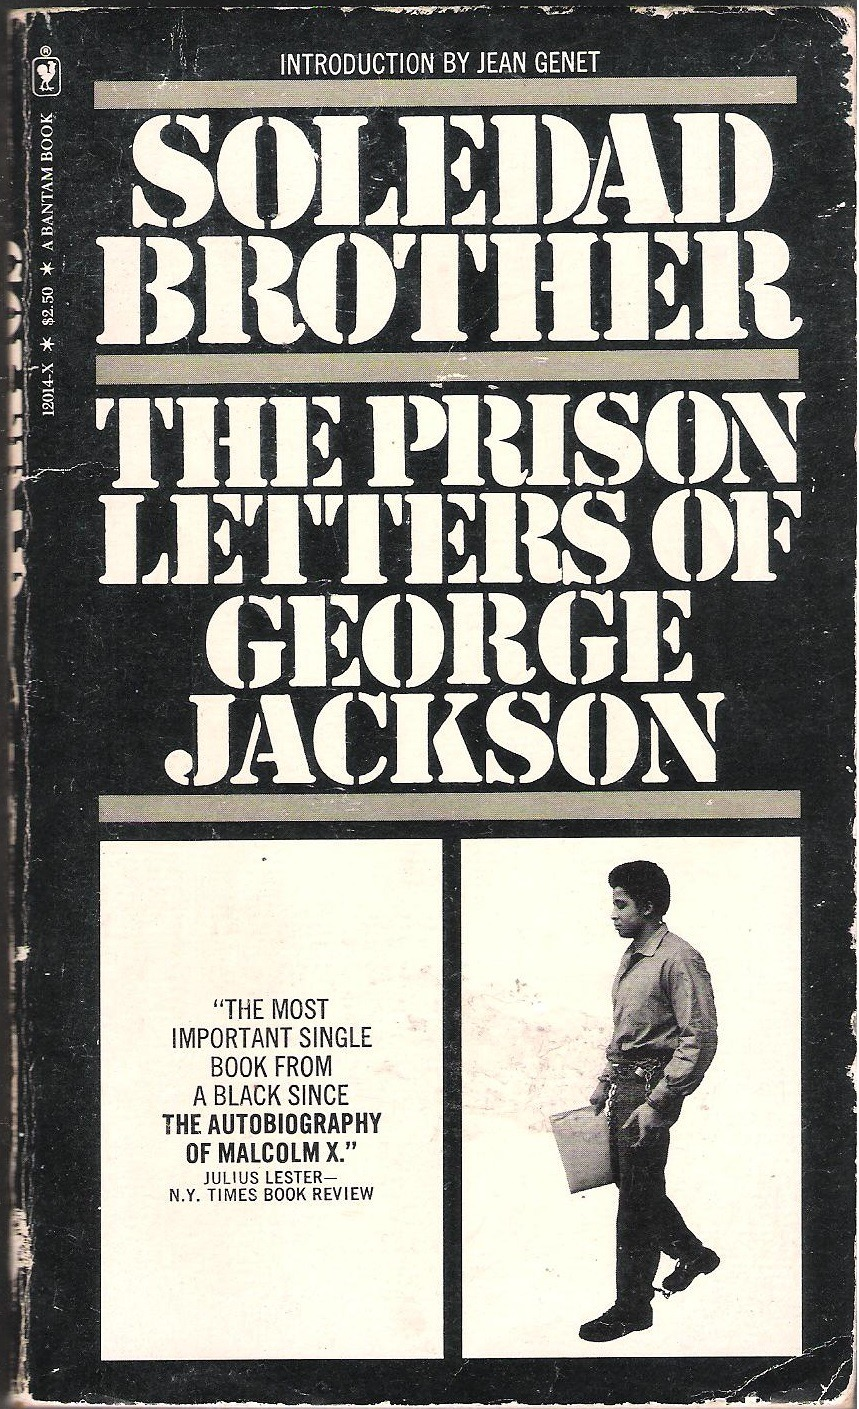 Film Director Derek Schklar selects  The Prison Letters of George Jackson  by the Soledad Brothers